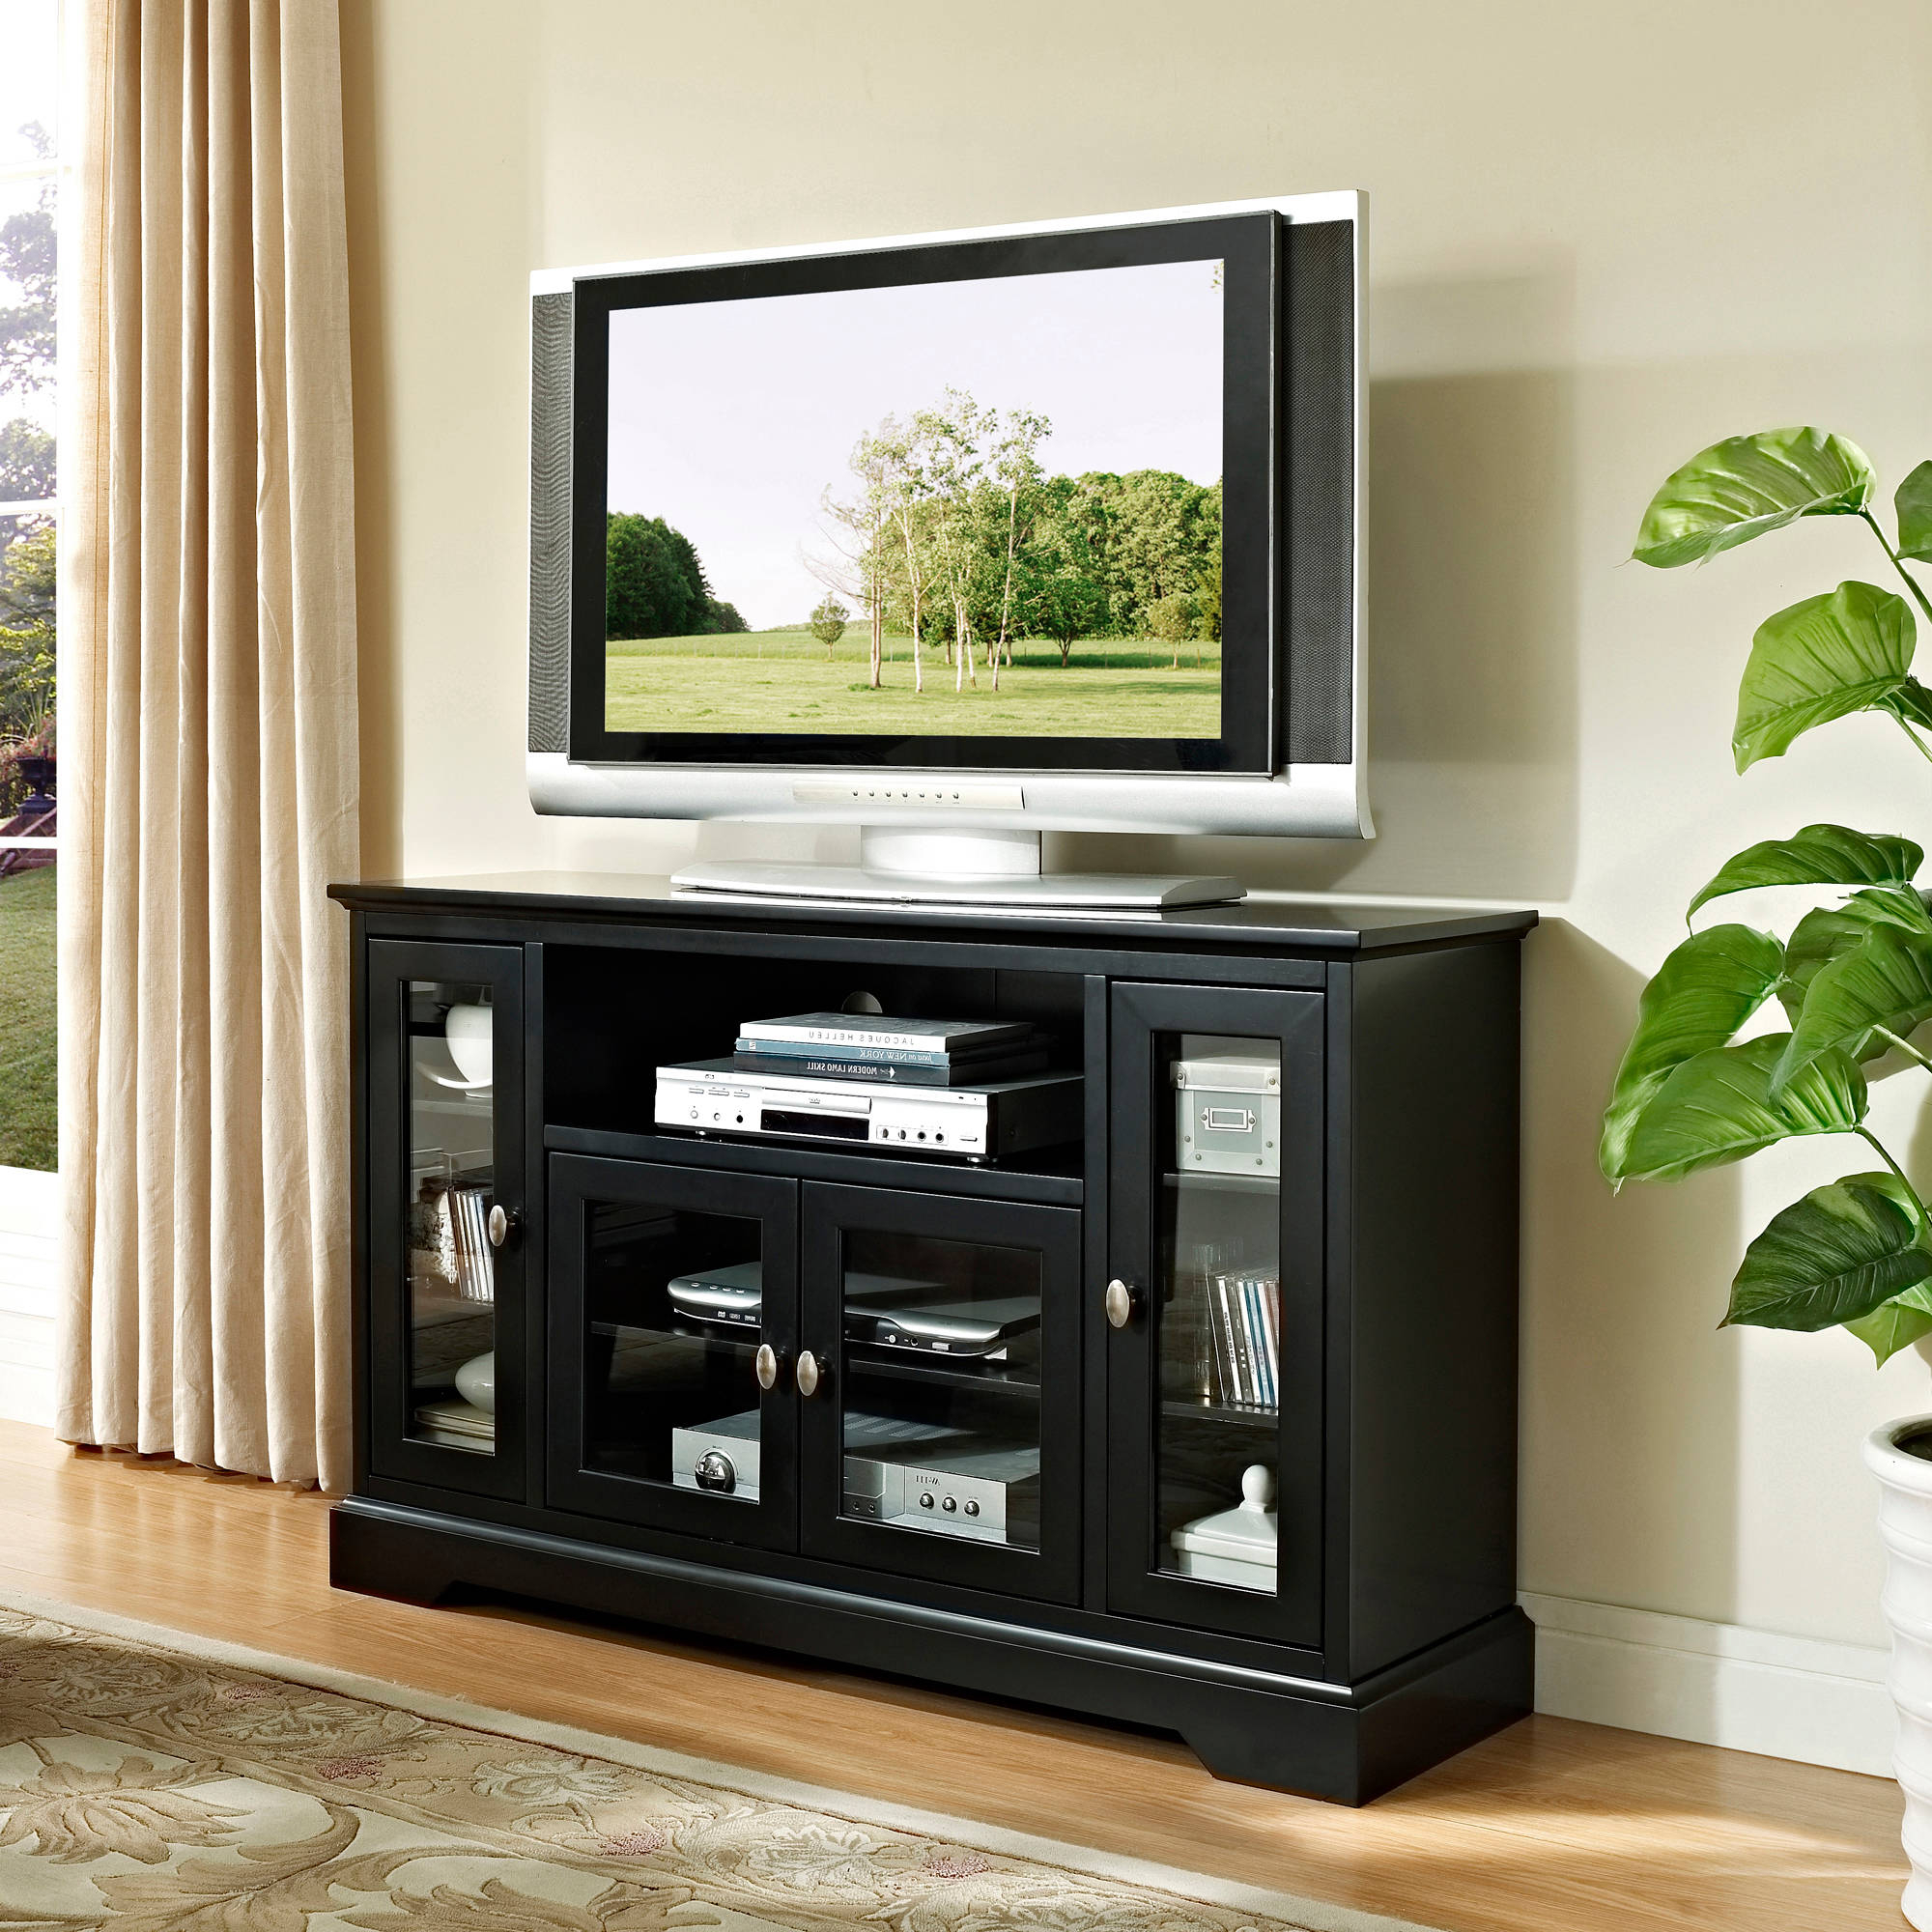 Most Recently Released Tv Stands Cabinets Intended For Walker Edison Highboy Style Wood Media Storage Tv Stand Console For (View 15 of 20)